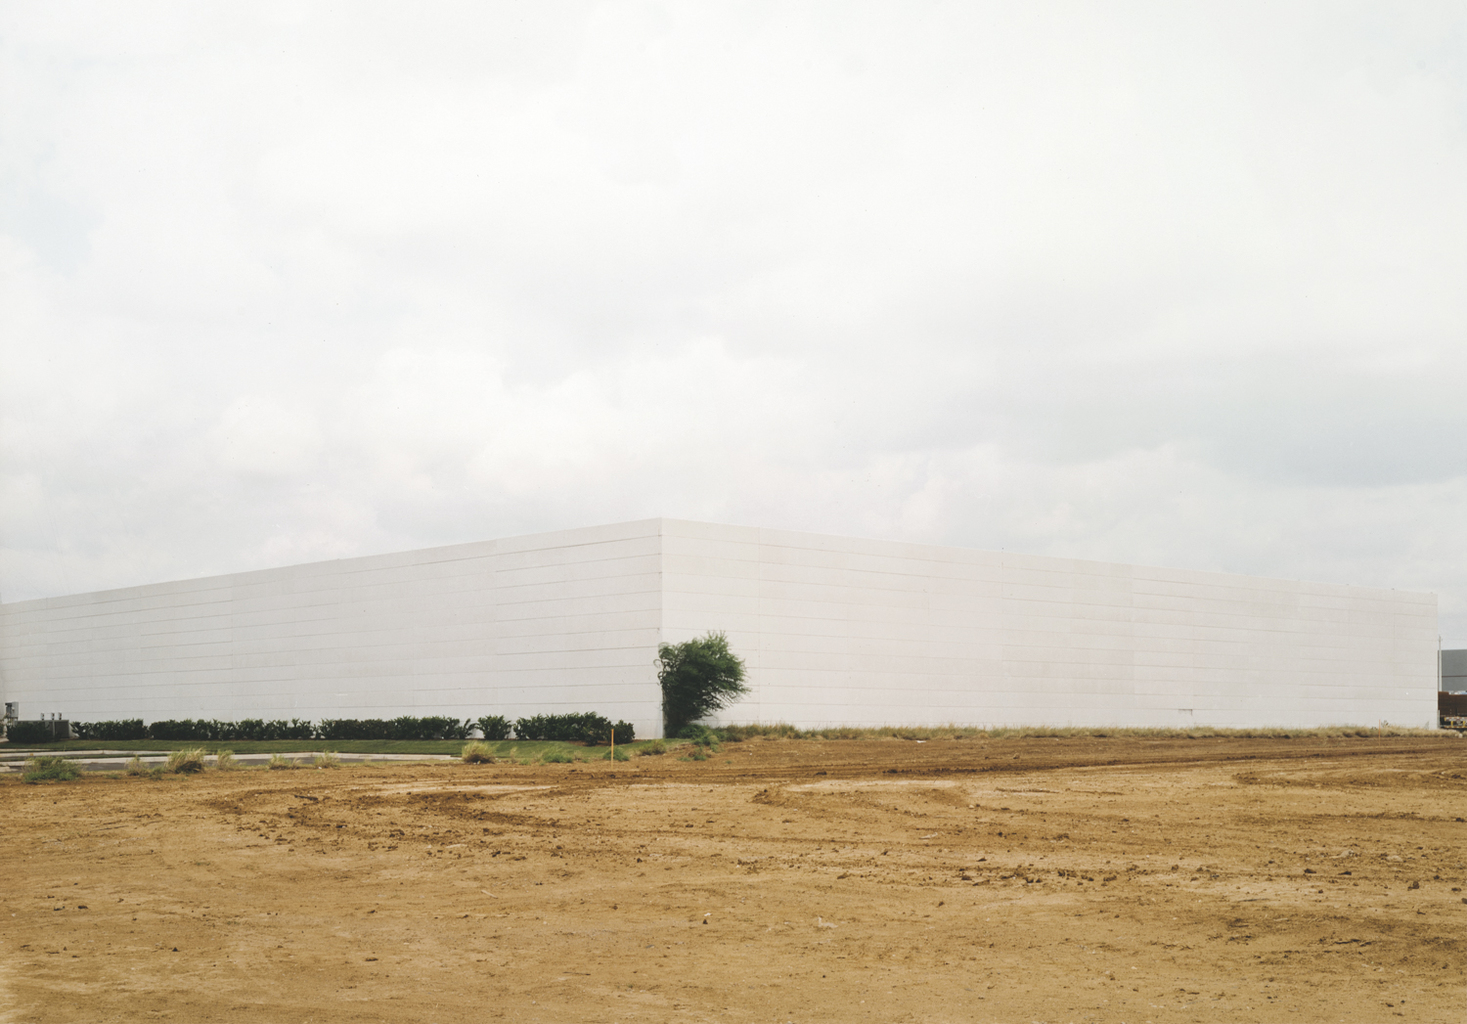 Untitled (White Building with Bush), 2000  © Victoria Sambunaris